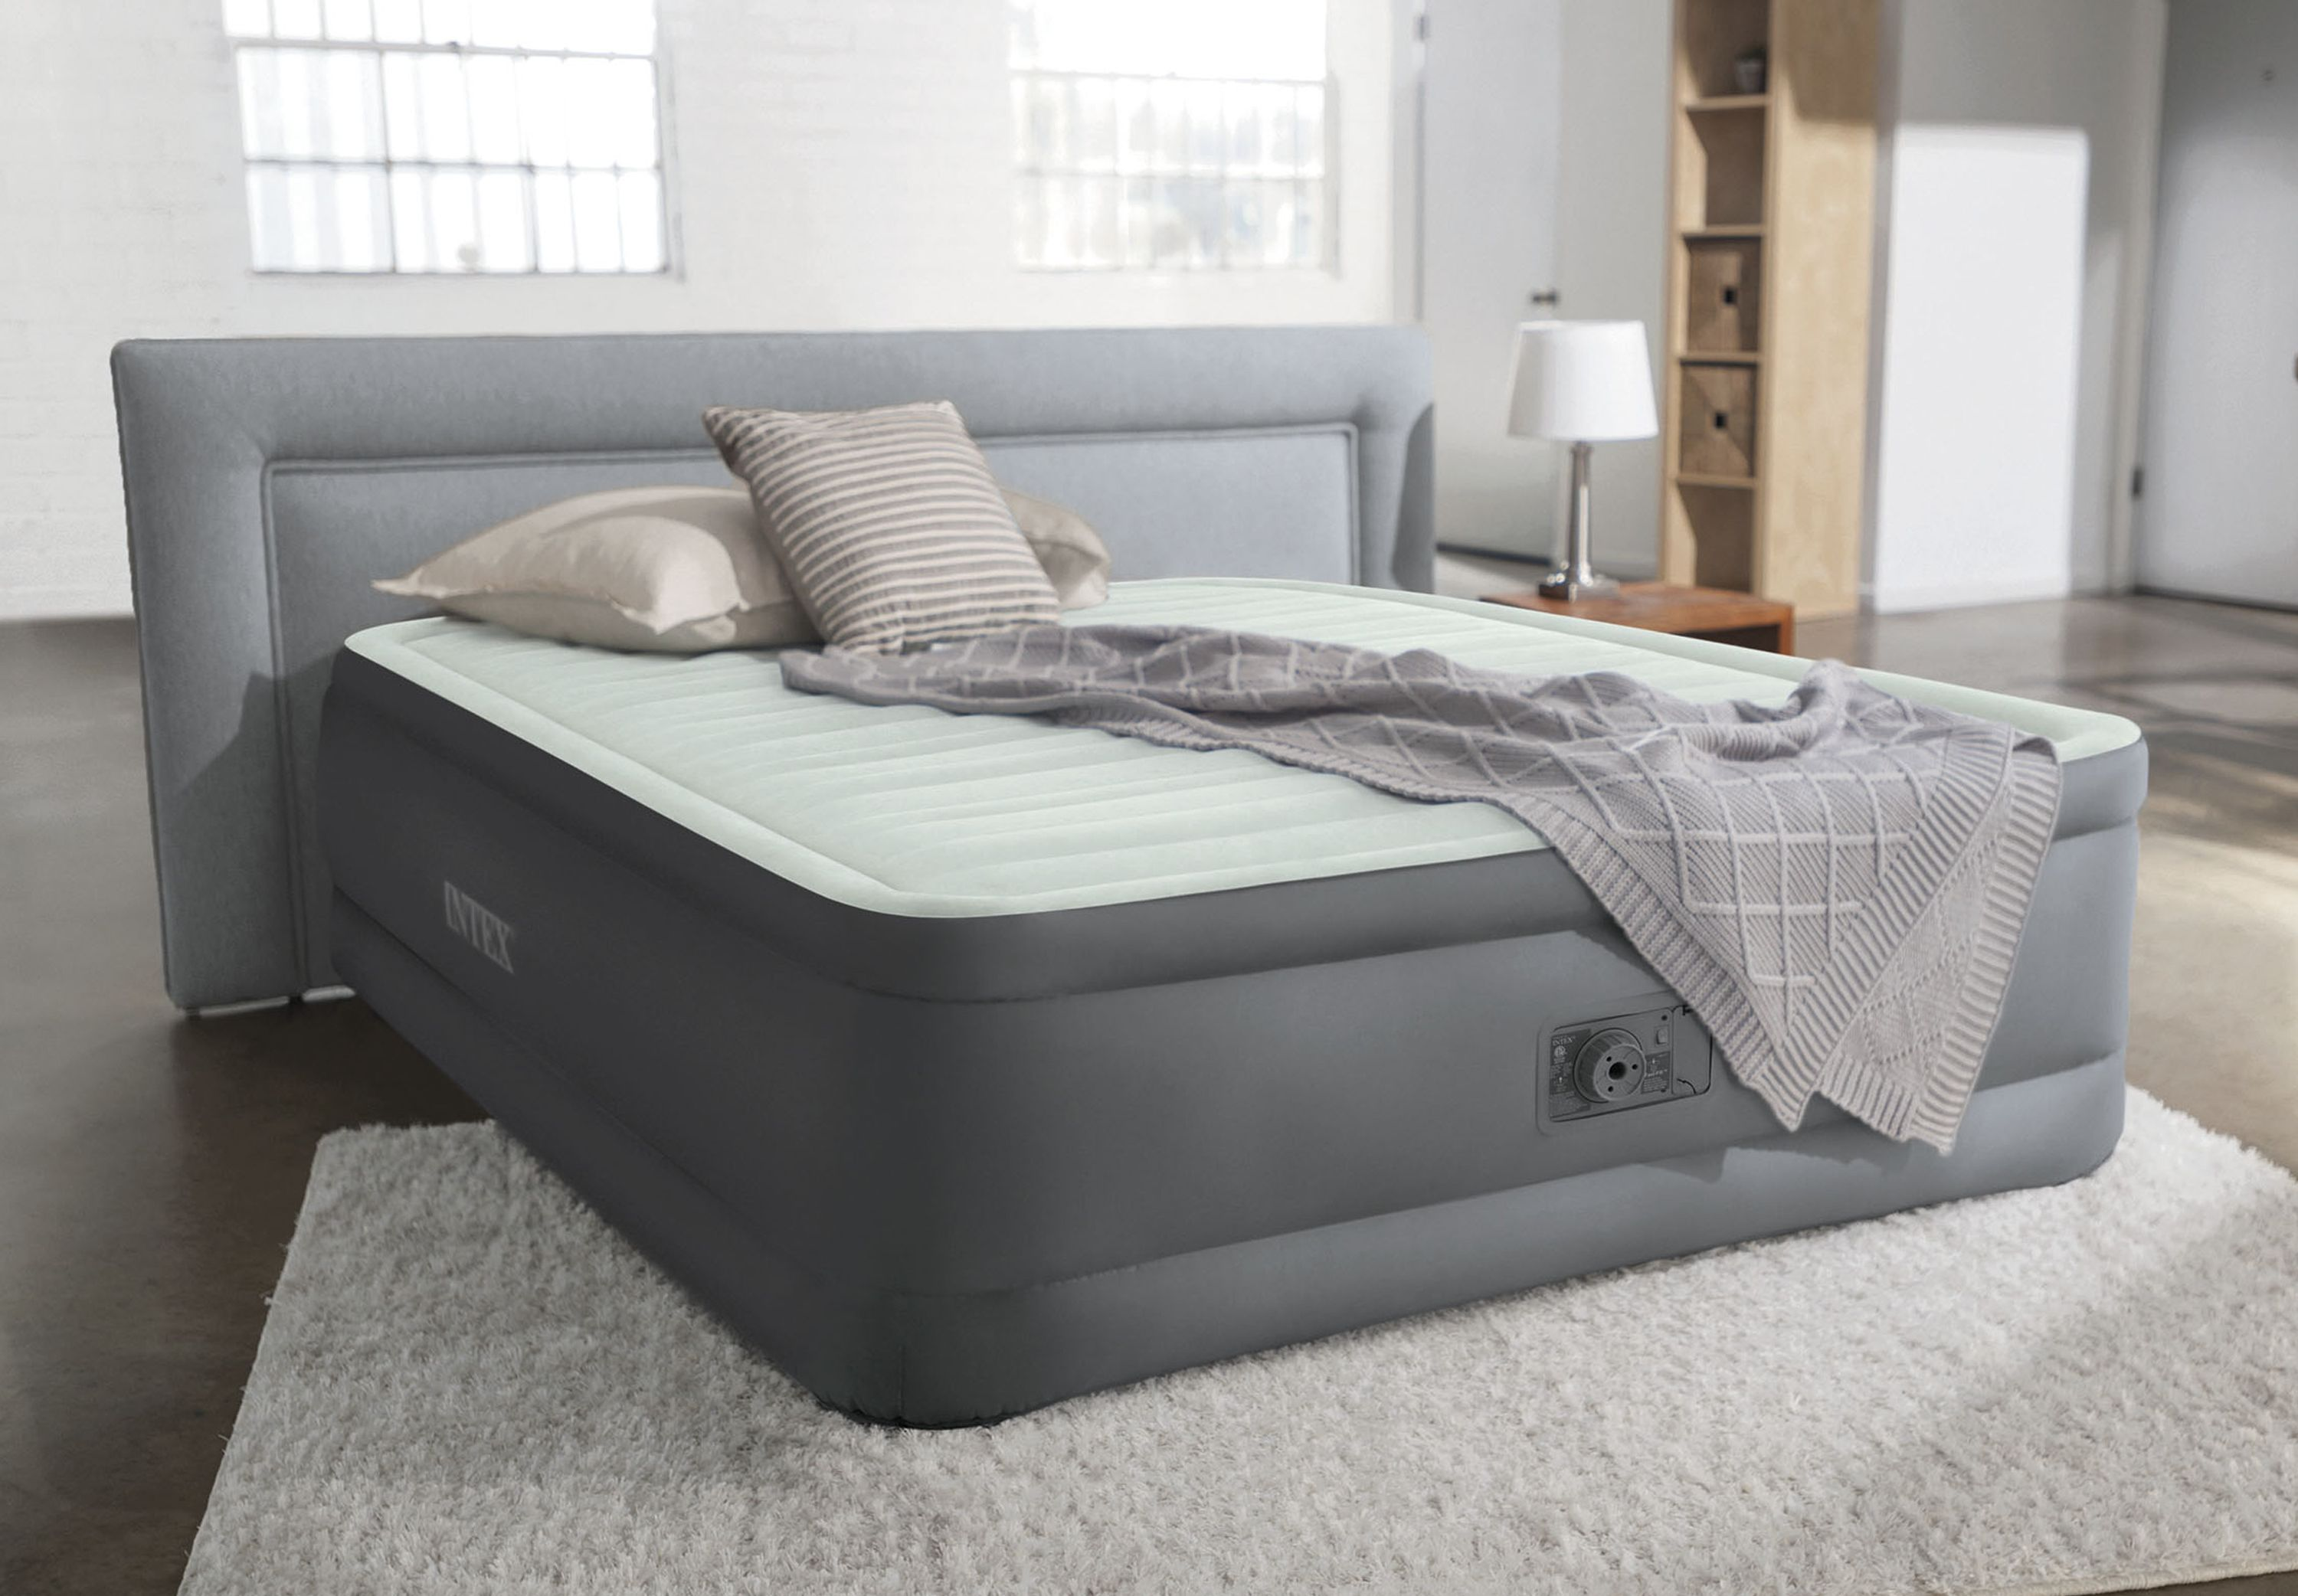 Sports Outdoors Air Bed Inflatable Bed Inflatable Mattress